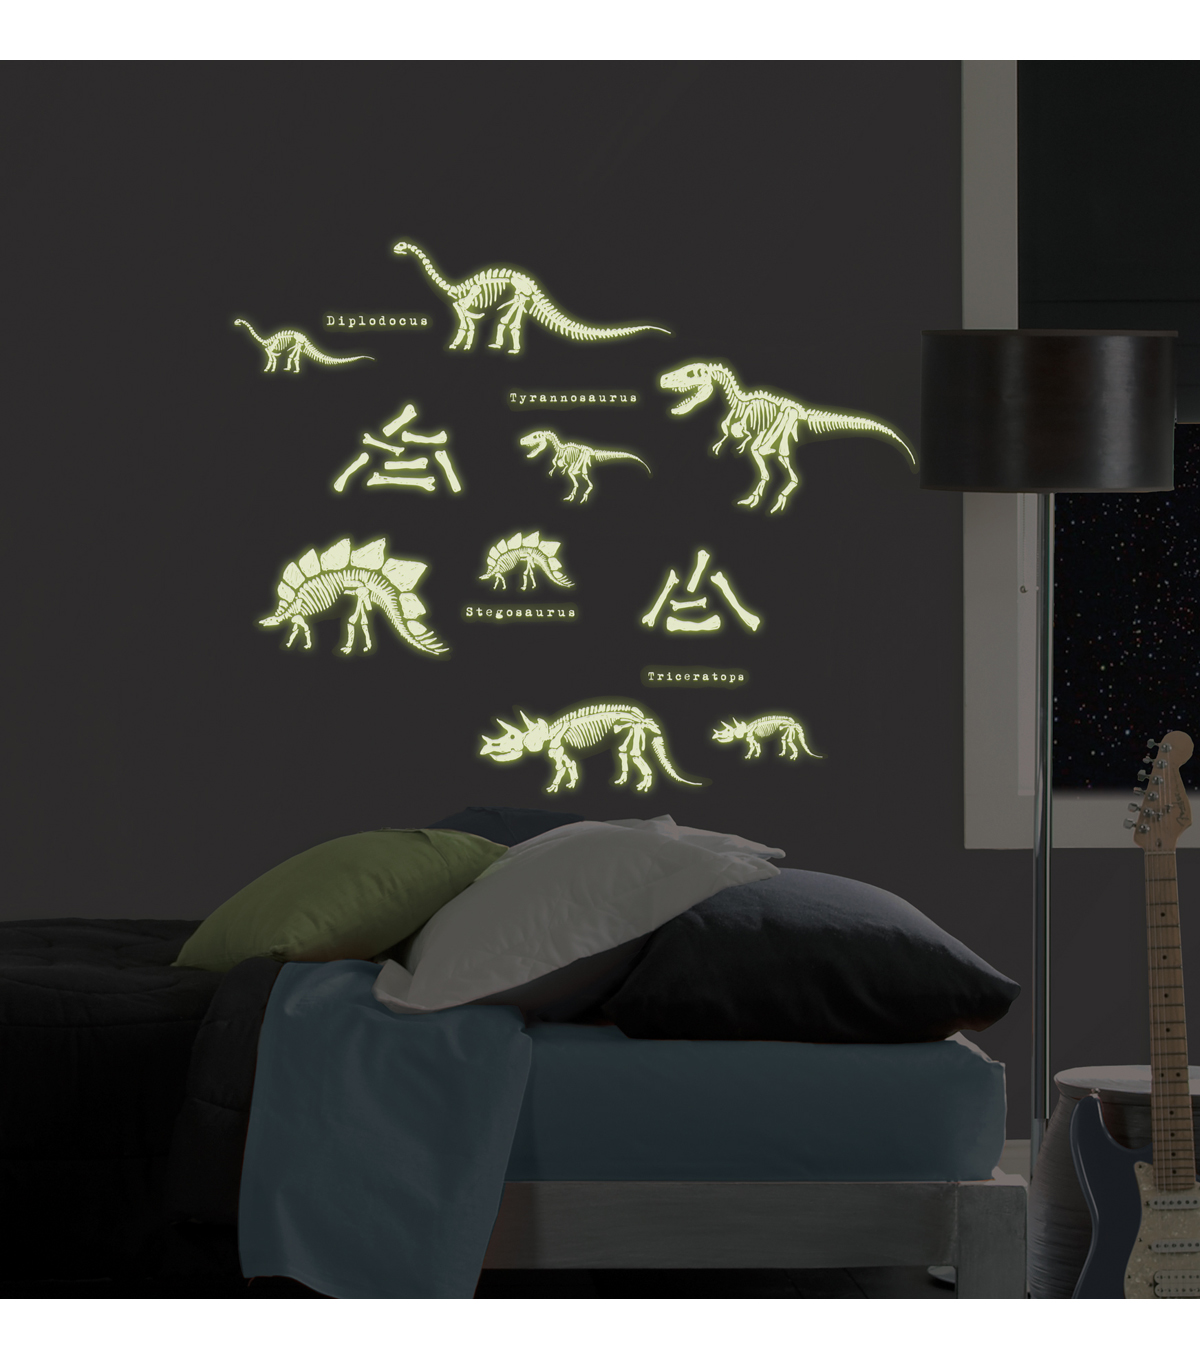 Wall Pops Glow in the Dark Dinosaur Appliques, 24 Piece Set